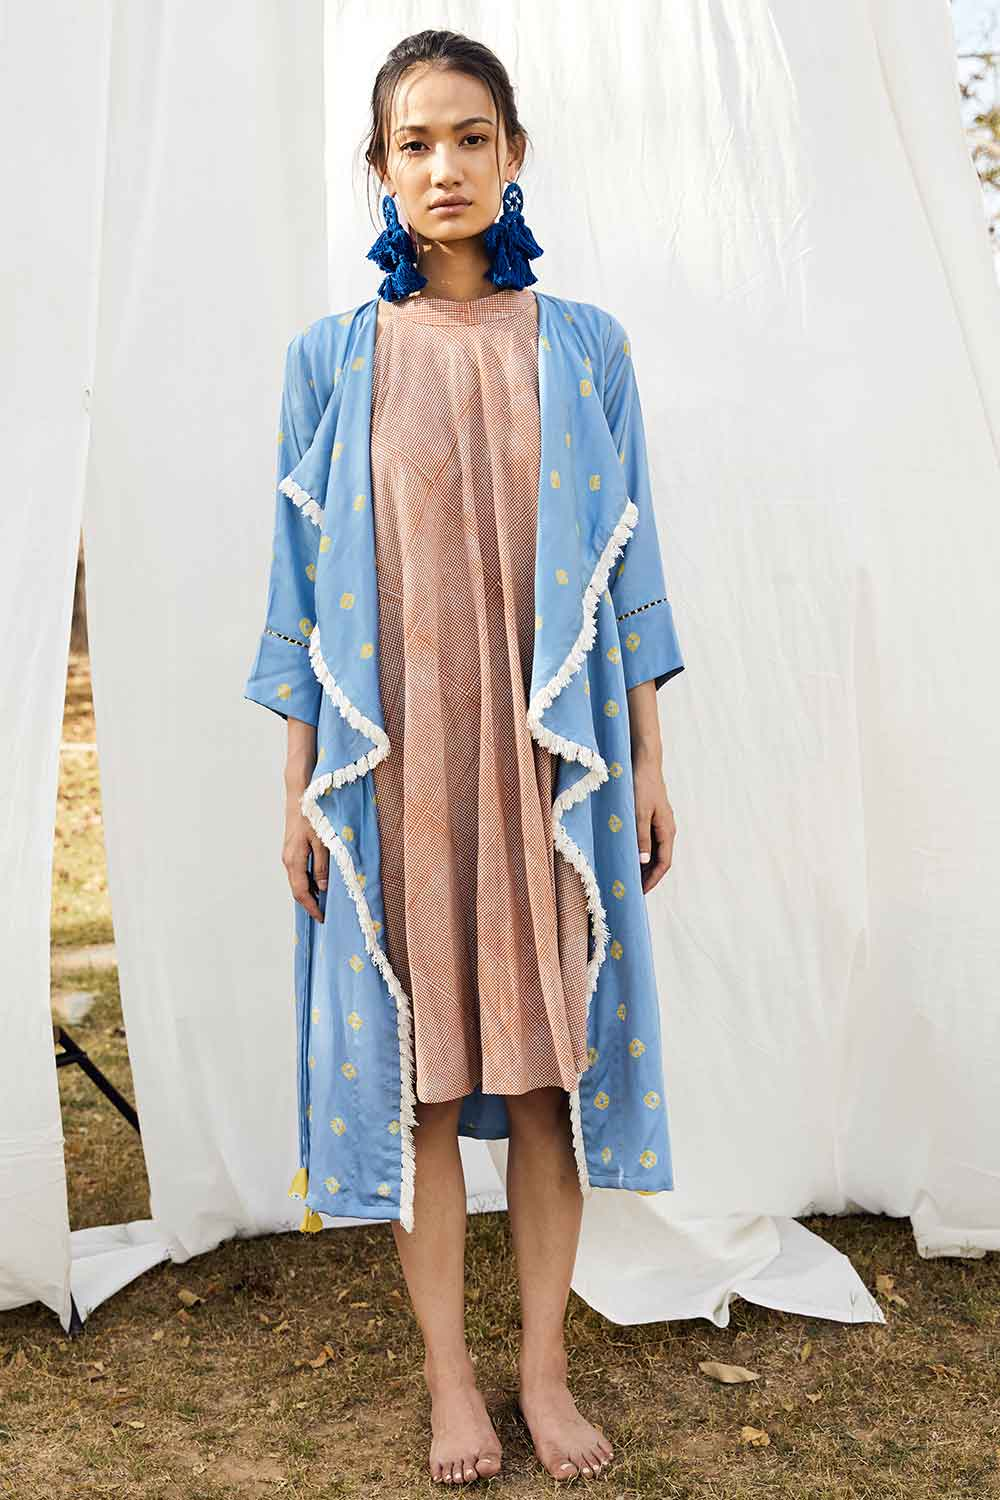 Block Printed Bais Dress With Bandhej Waterfall Jacket - Riviera Closet